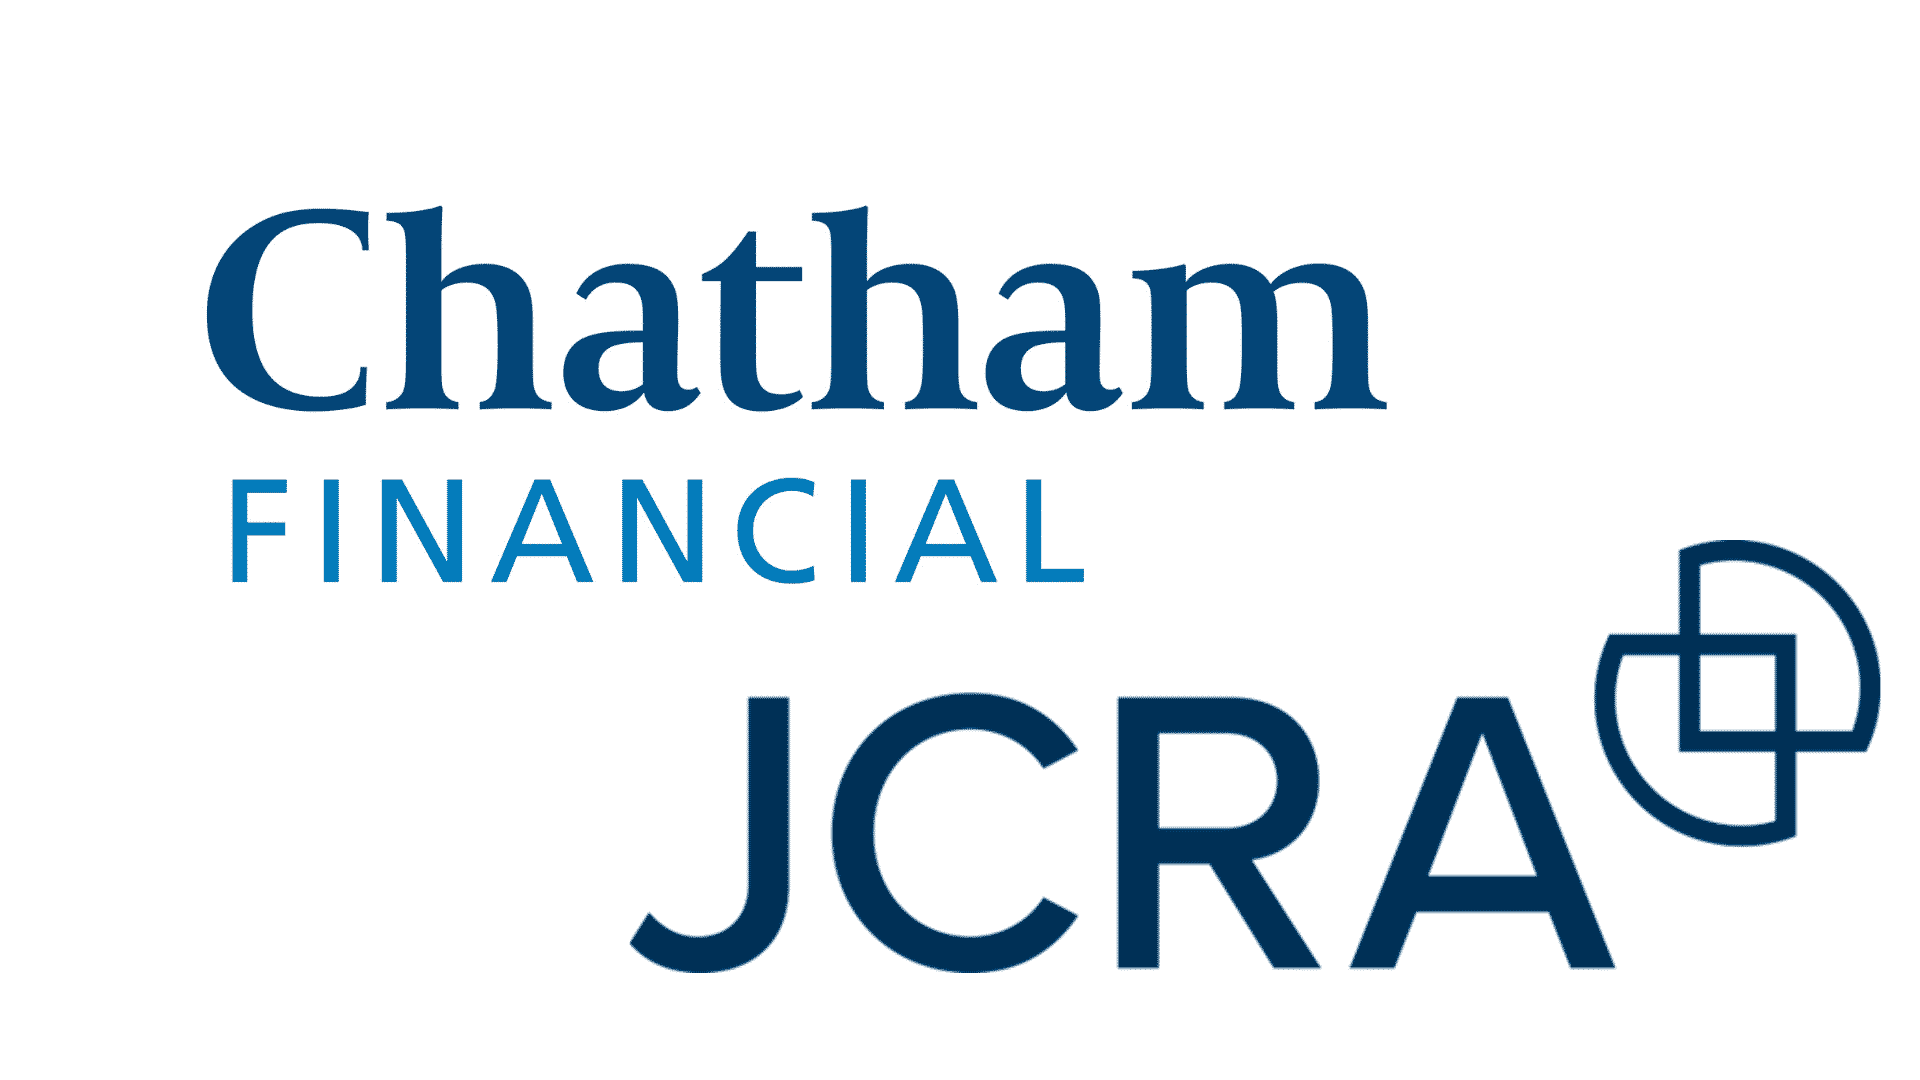 Chatham Financial Acquires London-based JCRA Group to Expand Firm Presence Globally